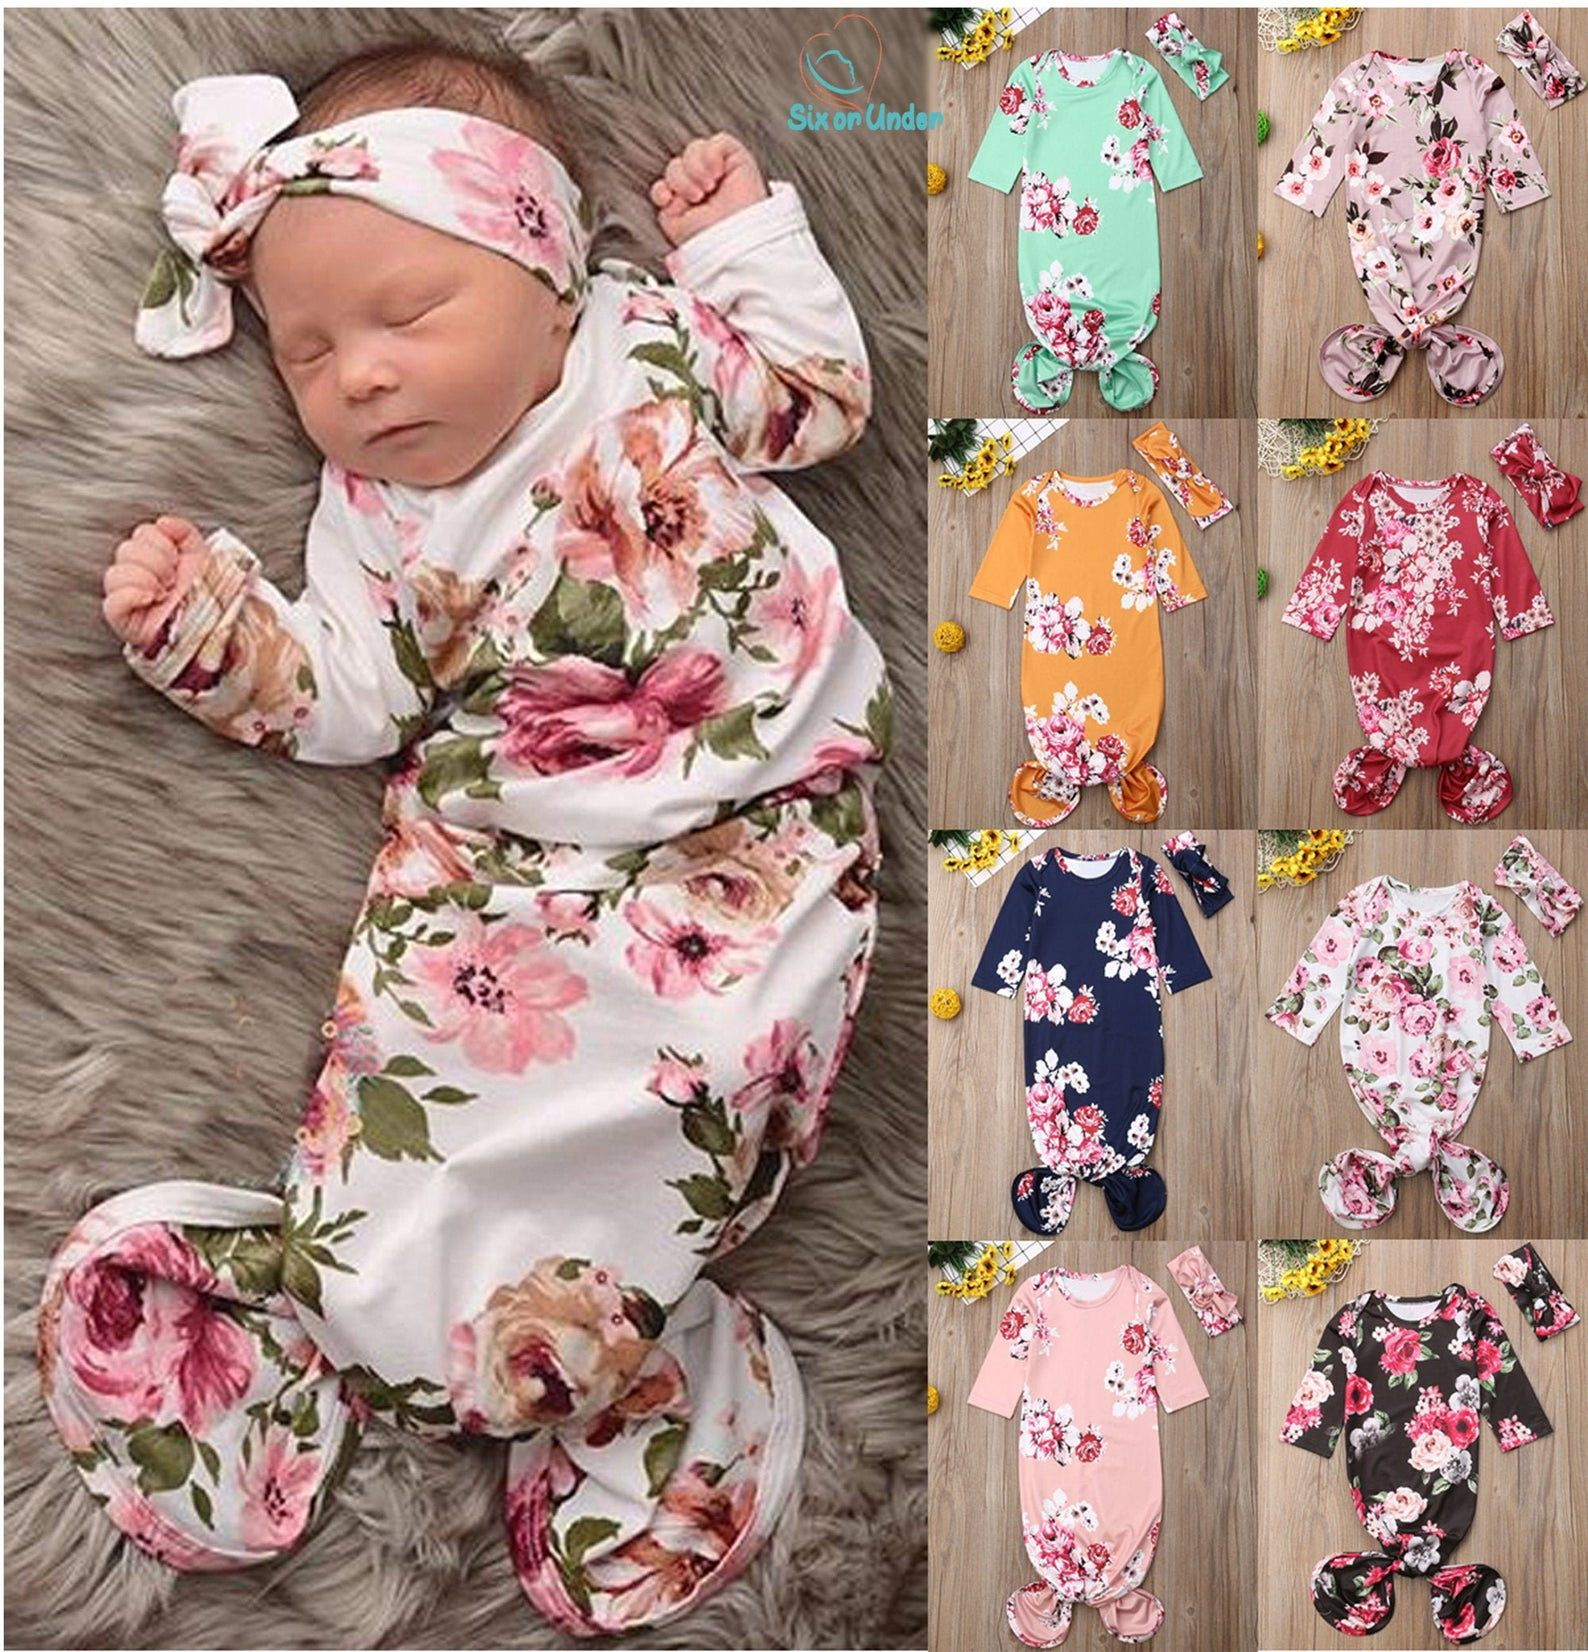 how to dress baby for sleep with swaddle